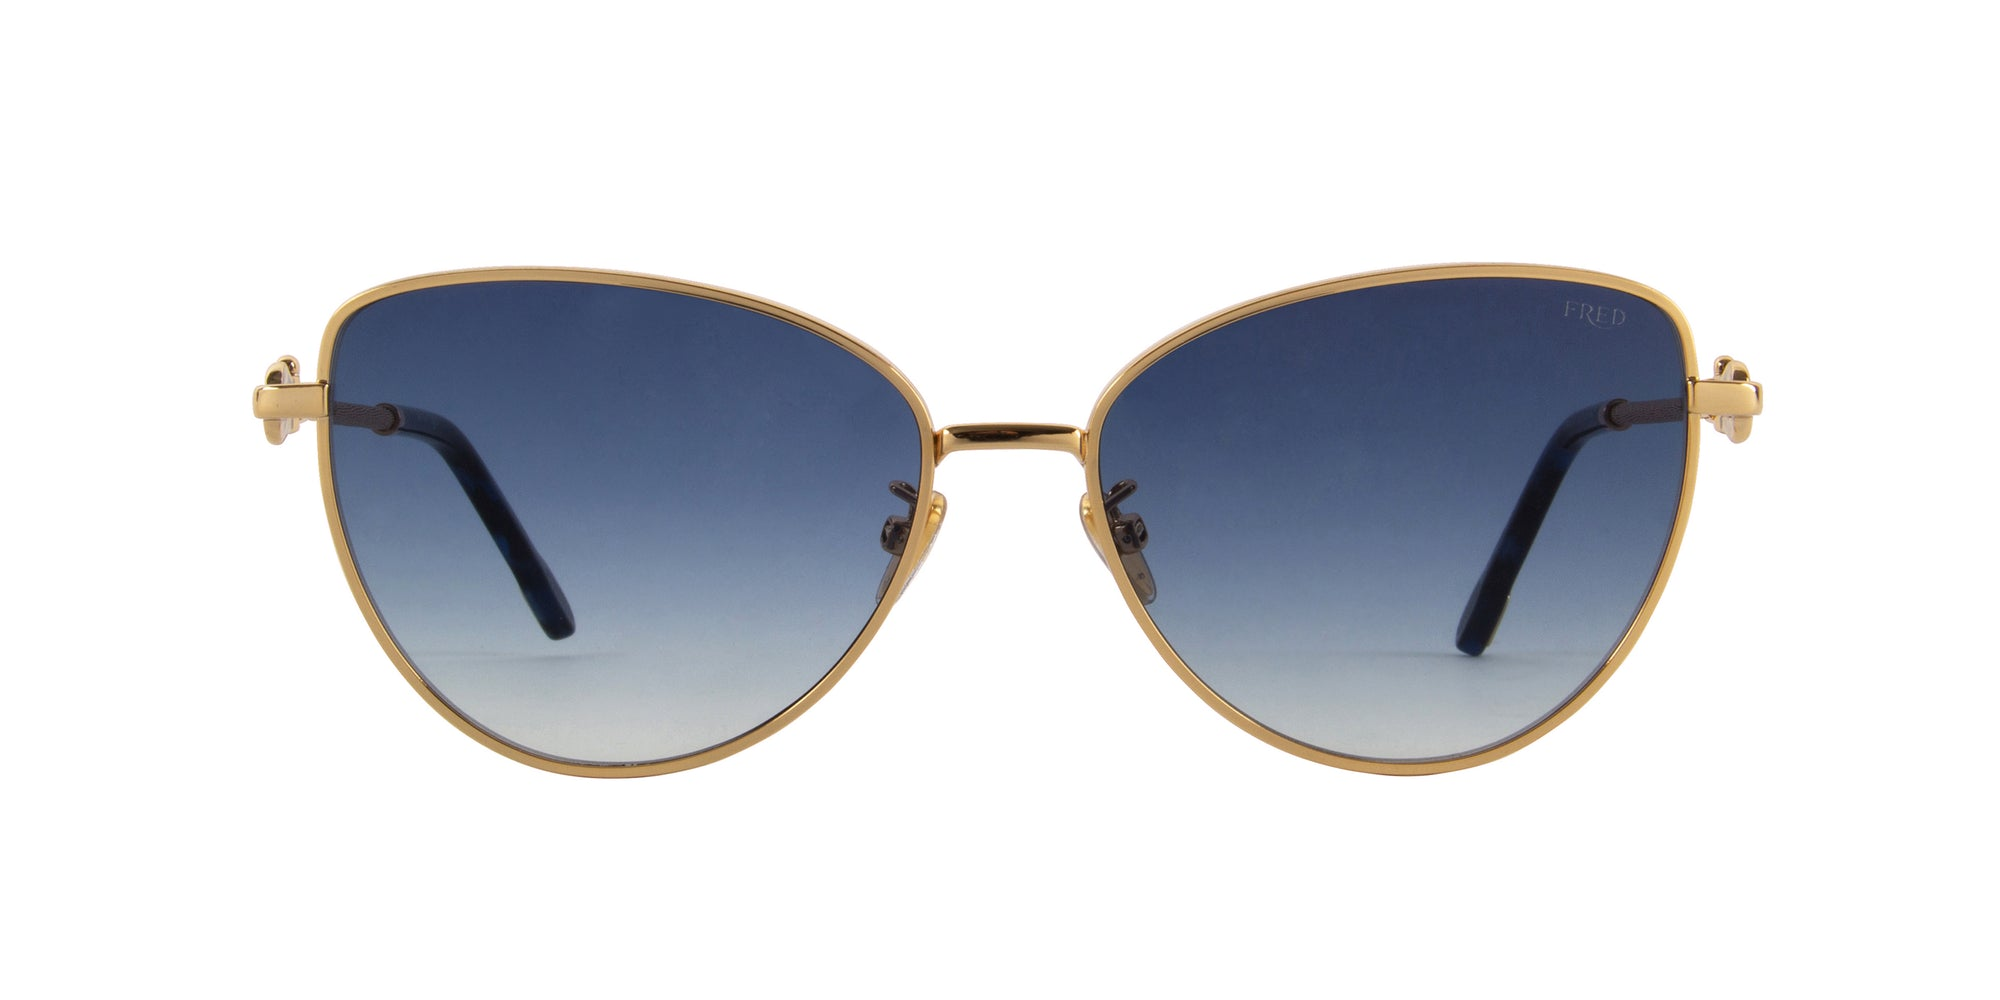 Fred - FG40015U Shiny Endura Gold Cat Eye Sunglasses - 59mm-Sunglasses-Designer Eyes